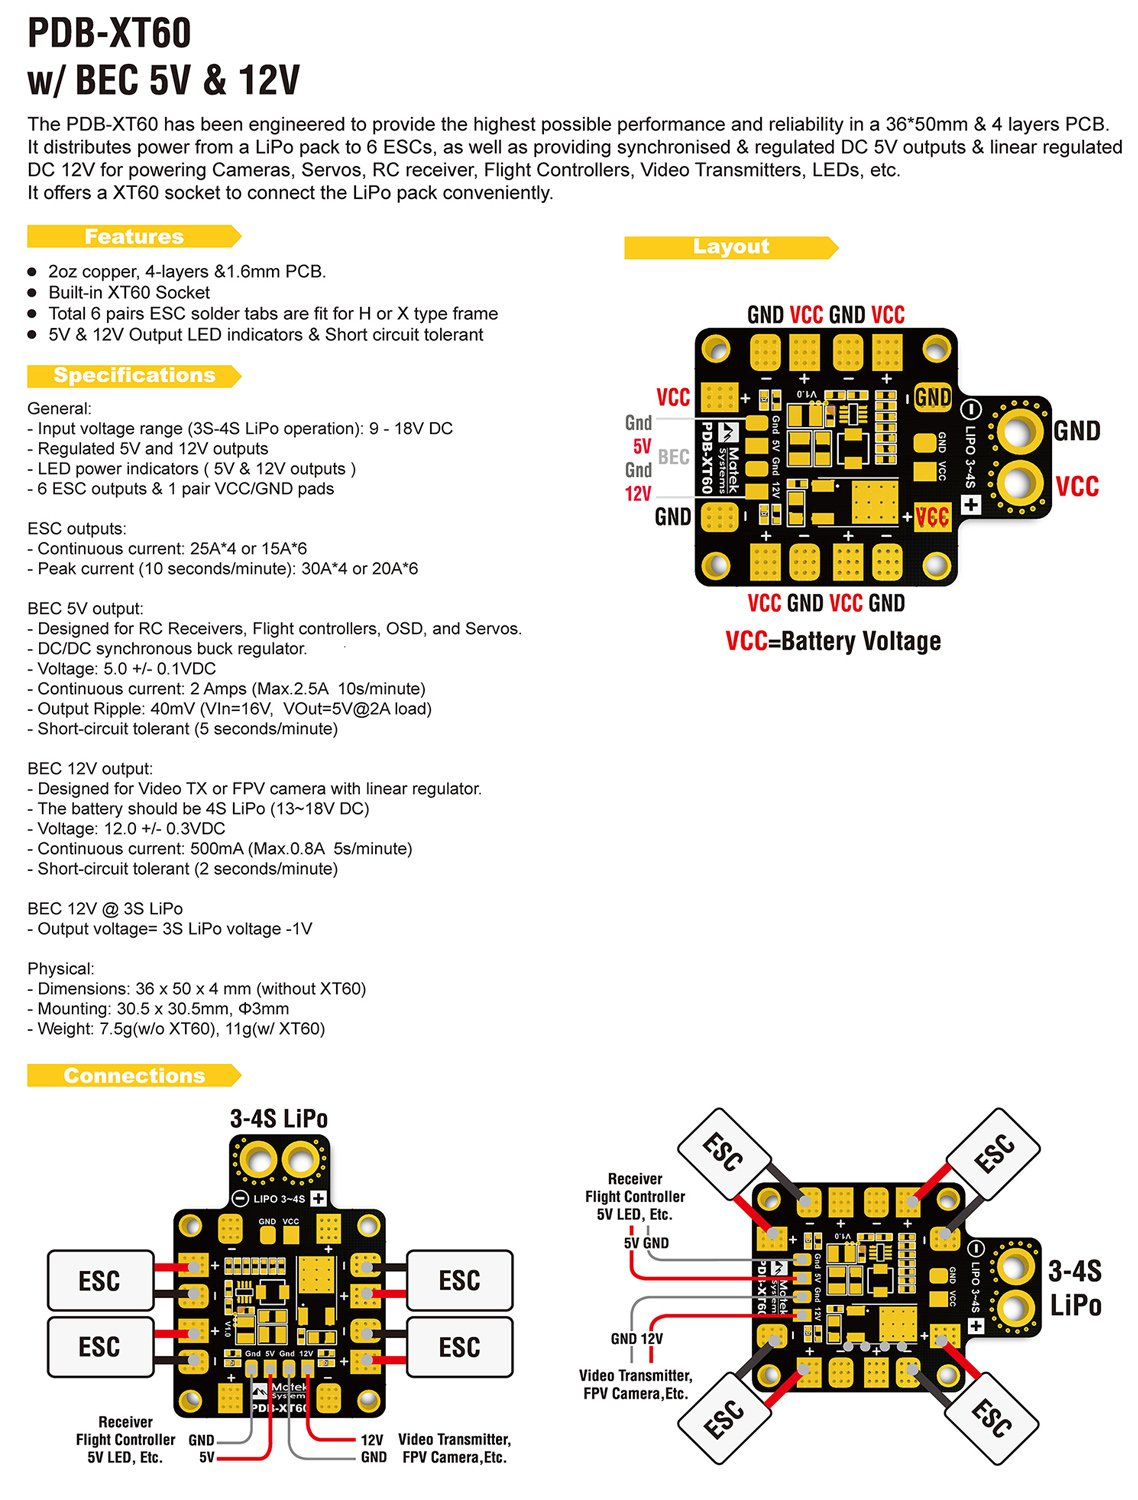 Pdb Xt60 Matek Power Distribution Board 4pcs Sponge Lipo Battery Pack Wiring Diagram Mat Landing Pad Gearsupport 3s 4s Batterybec 5v 2a Linear Regulated 12v 05a With